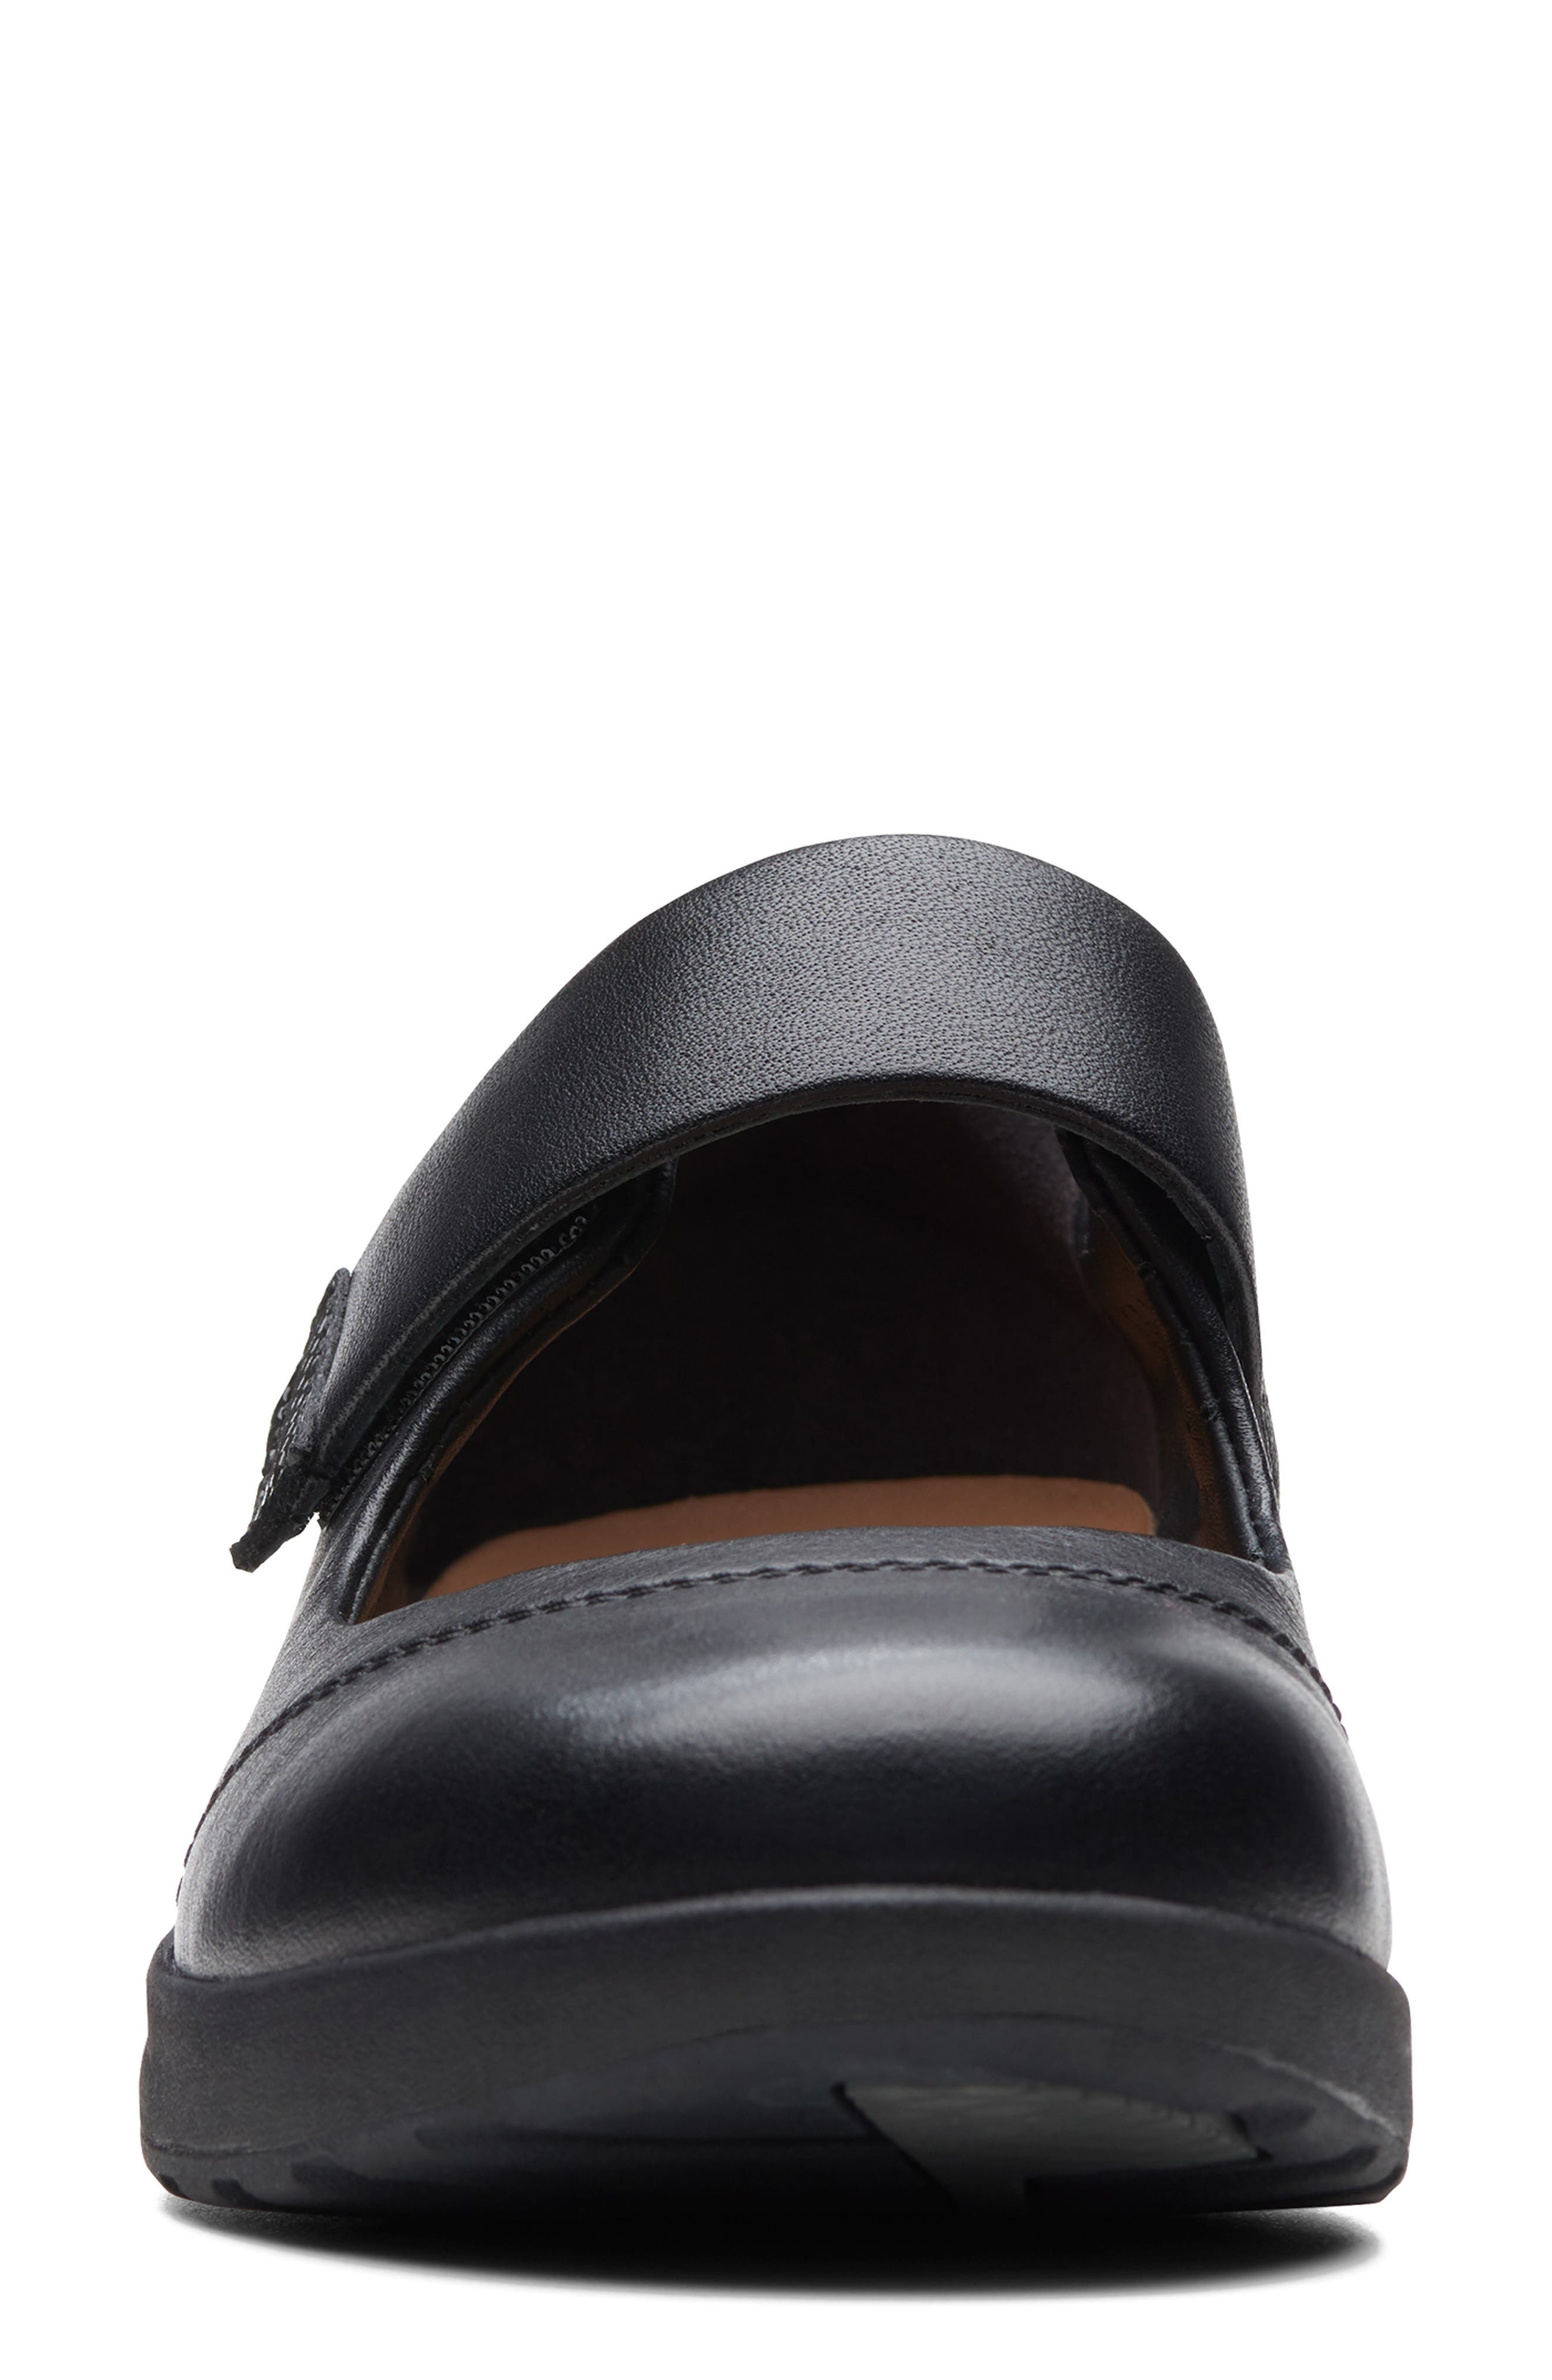 ,                             Un Adorn Mary Jane Flat,                             Alternate thumbnail 3, color,                             BLACK LEATHER/ SUEDE COMBI